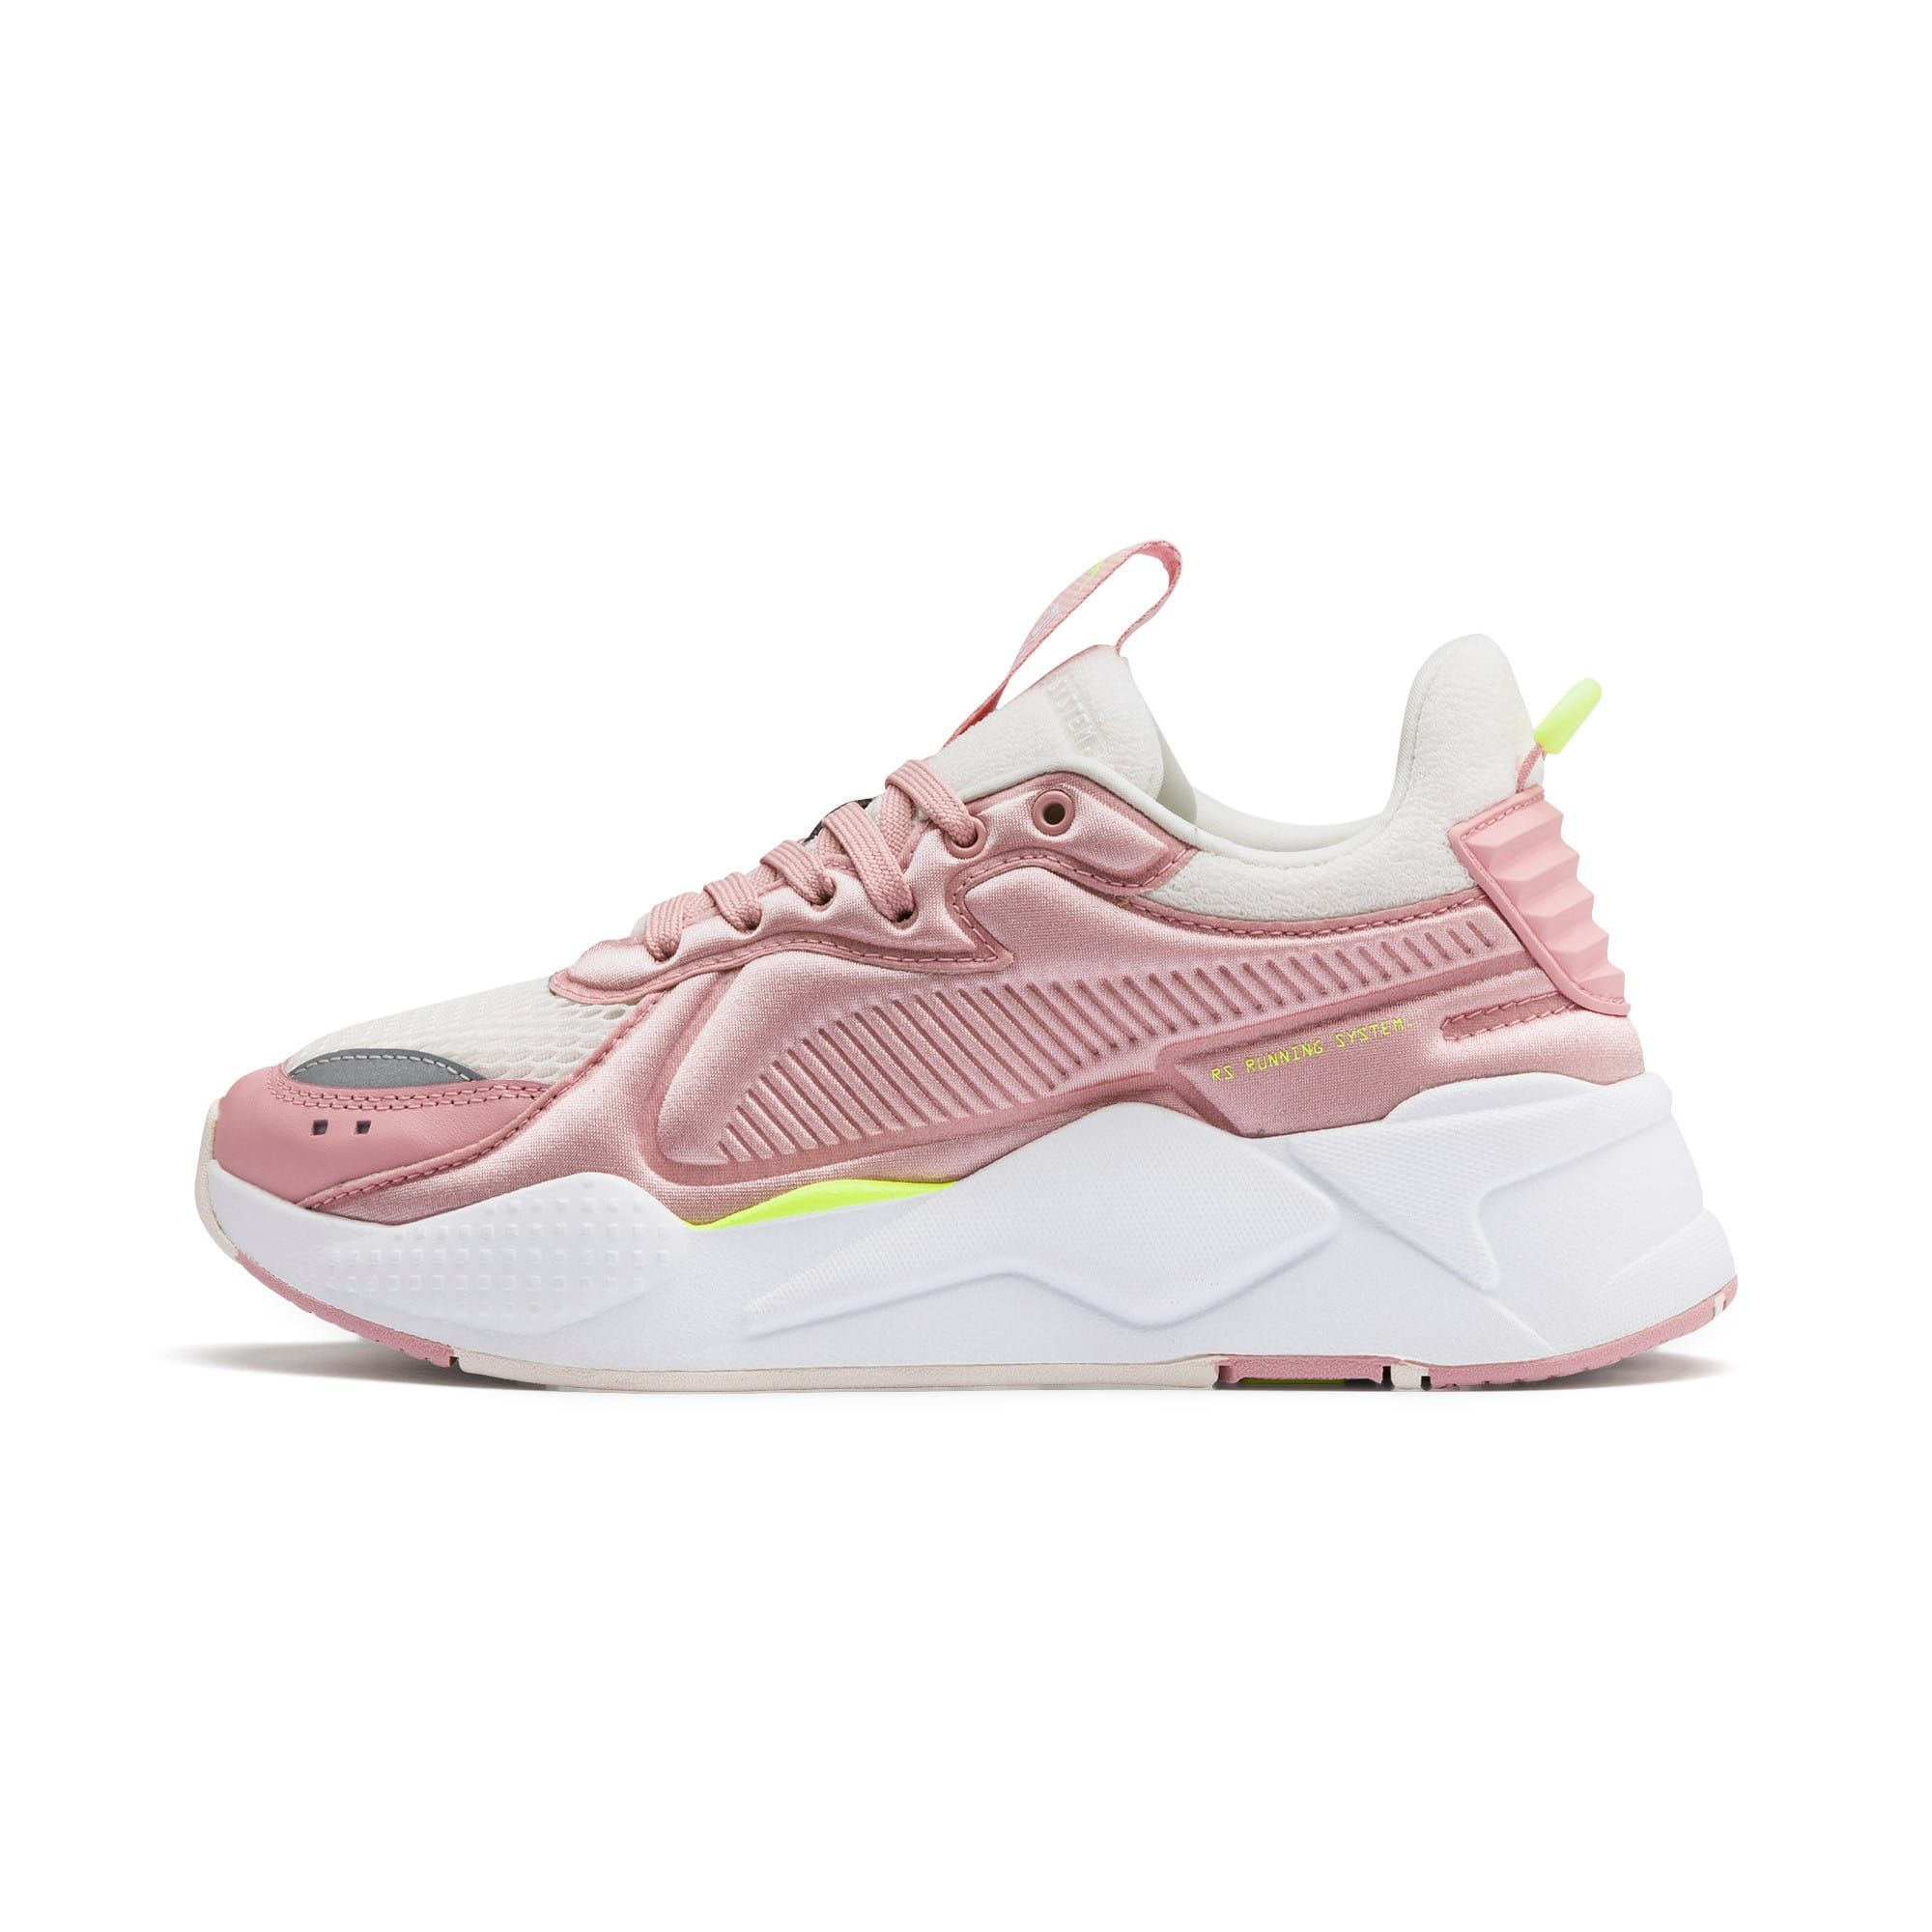 RS-X Softcase Trainers | Childrens shoes, Neon party outfits ...